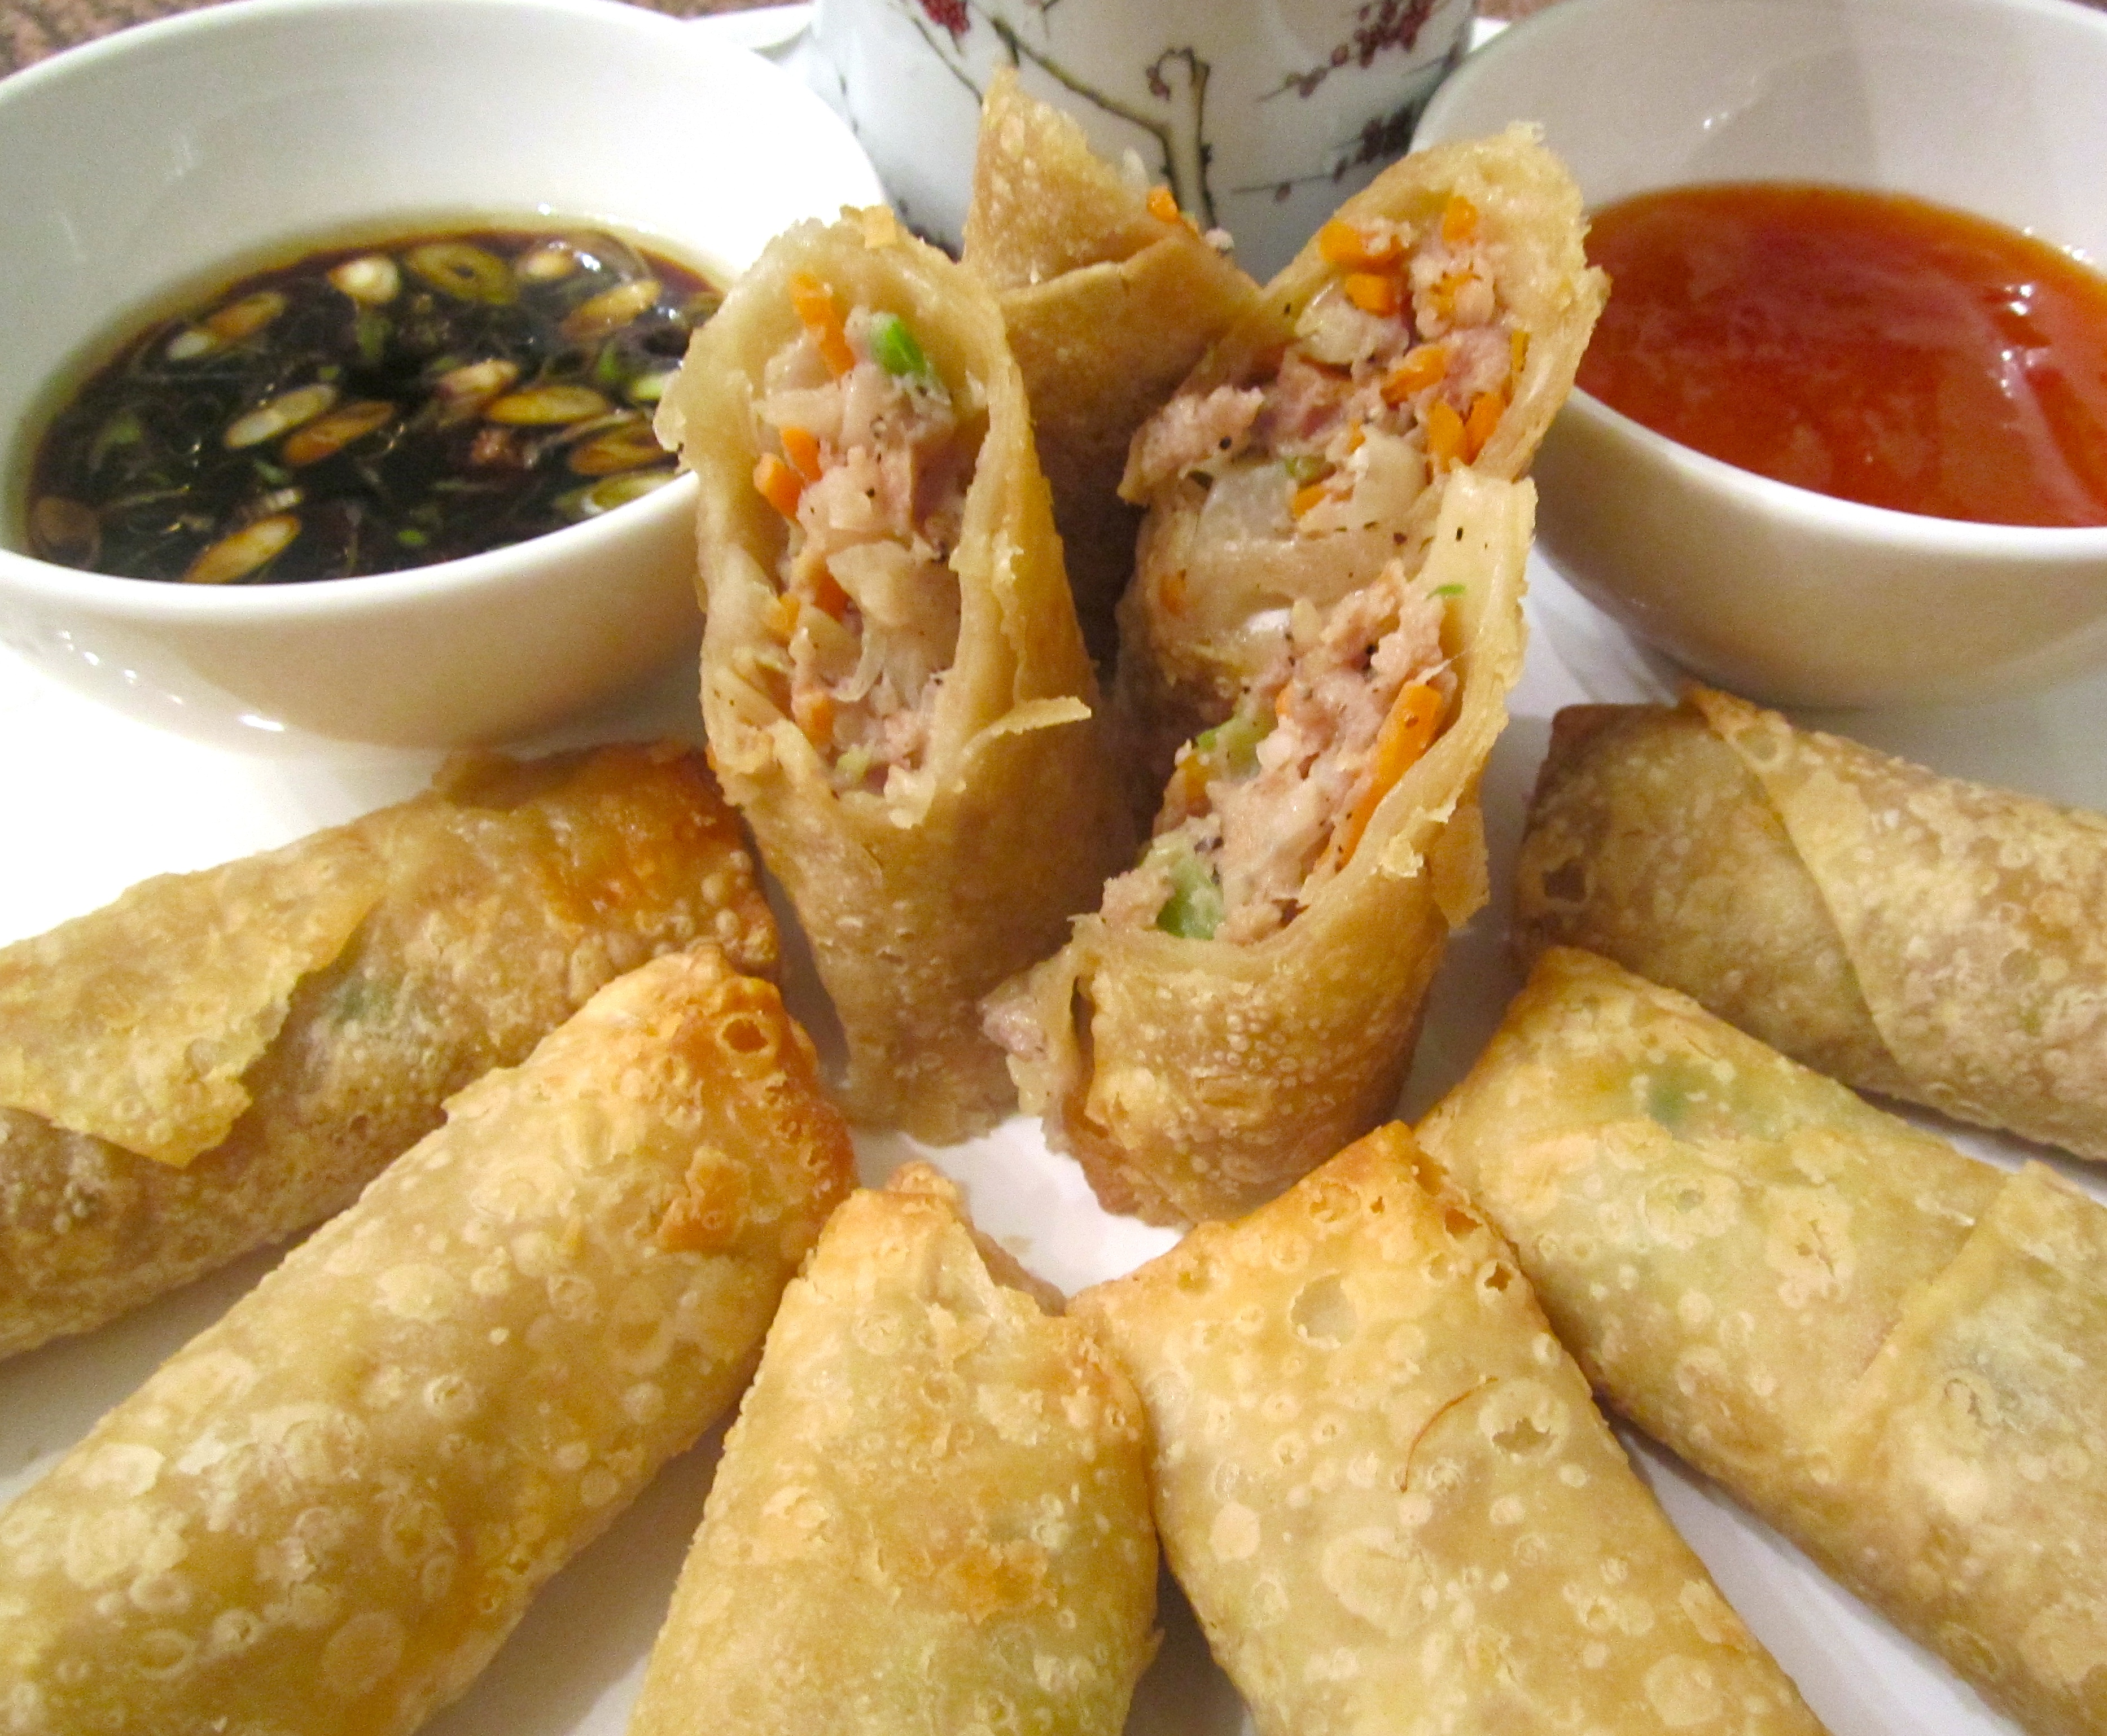 Baked Egg Rolls With Pork And Vegetables "